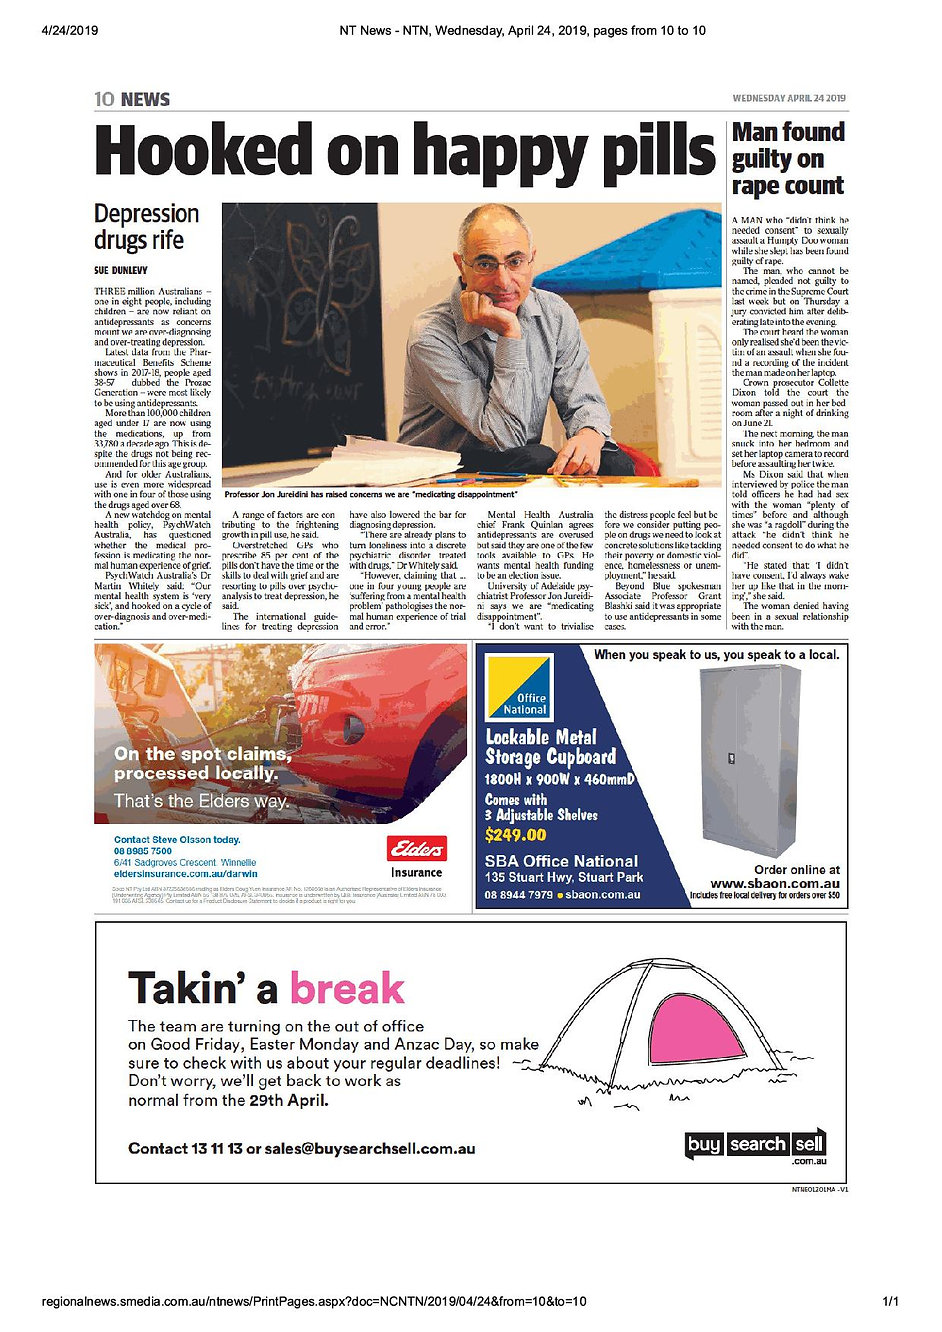 Hooked on happy pills. NT news. 24.04.19